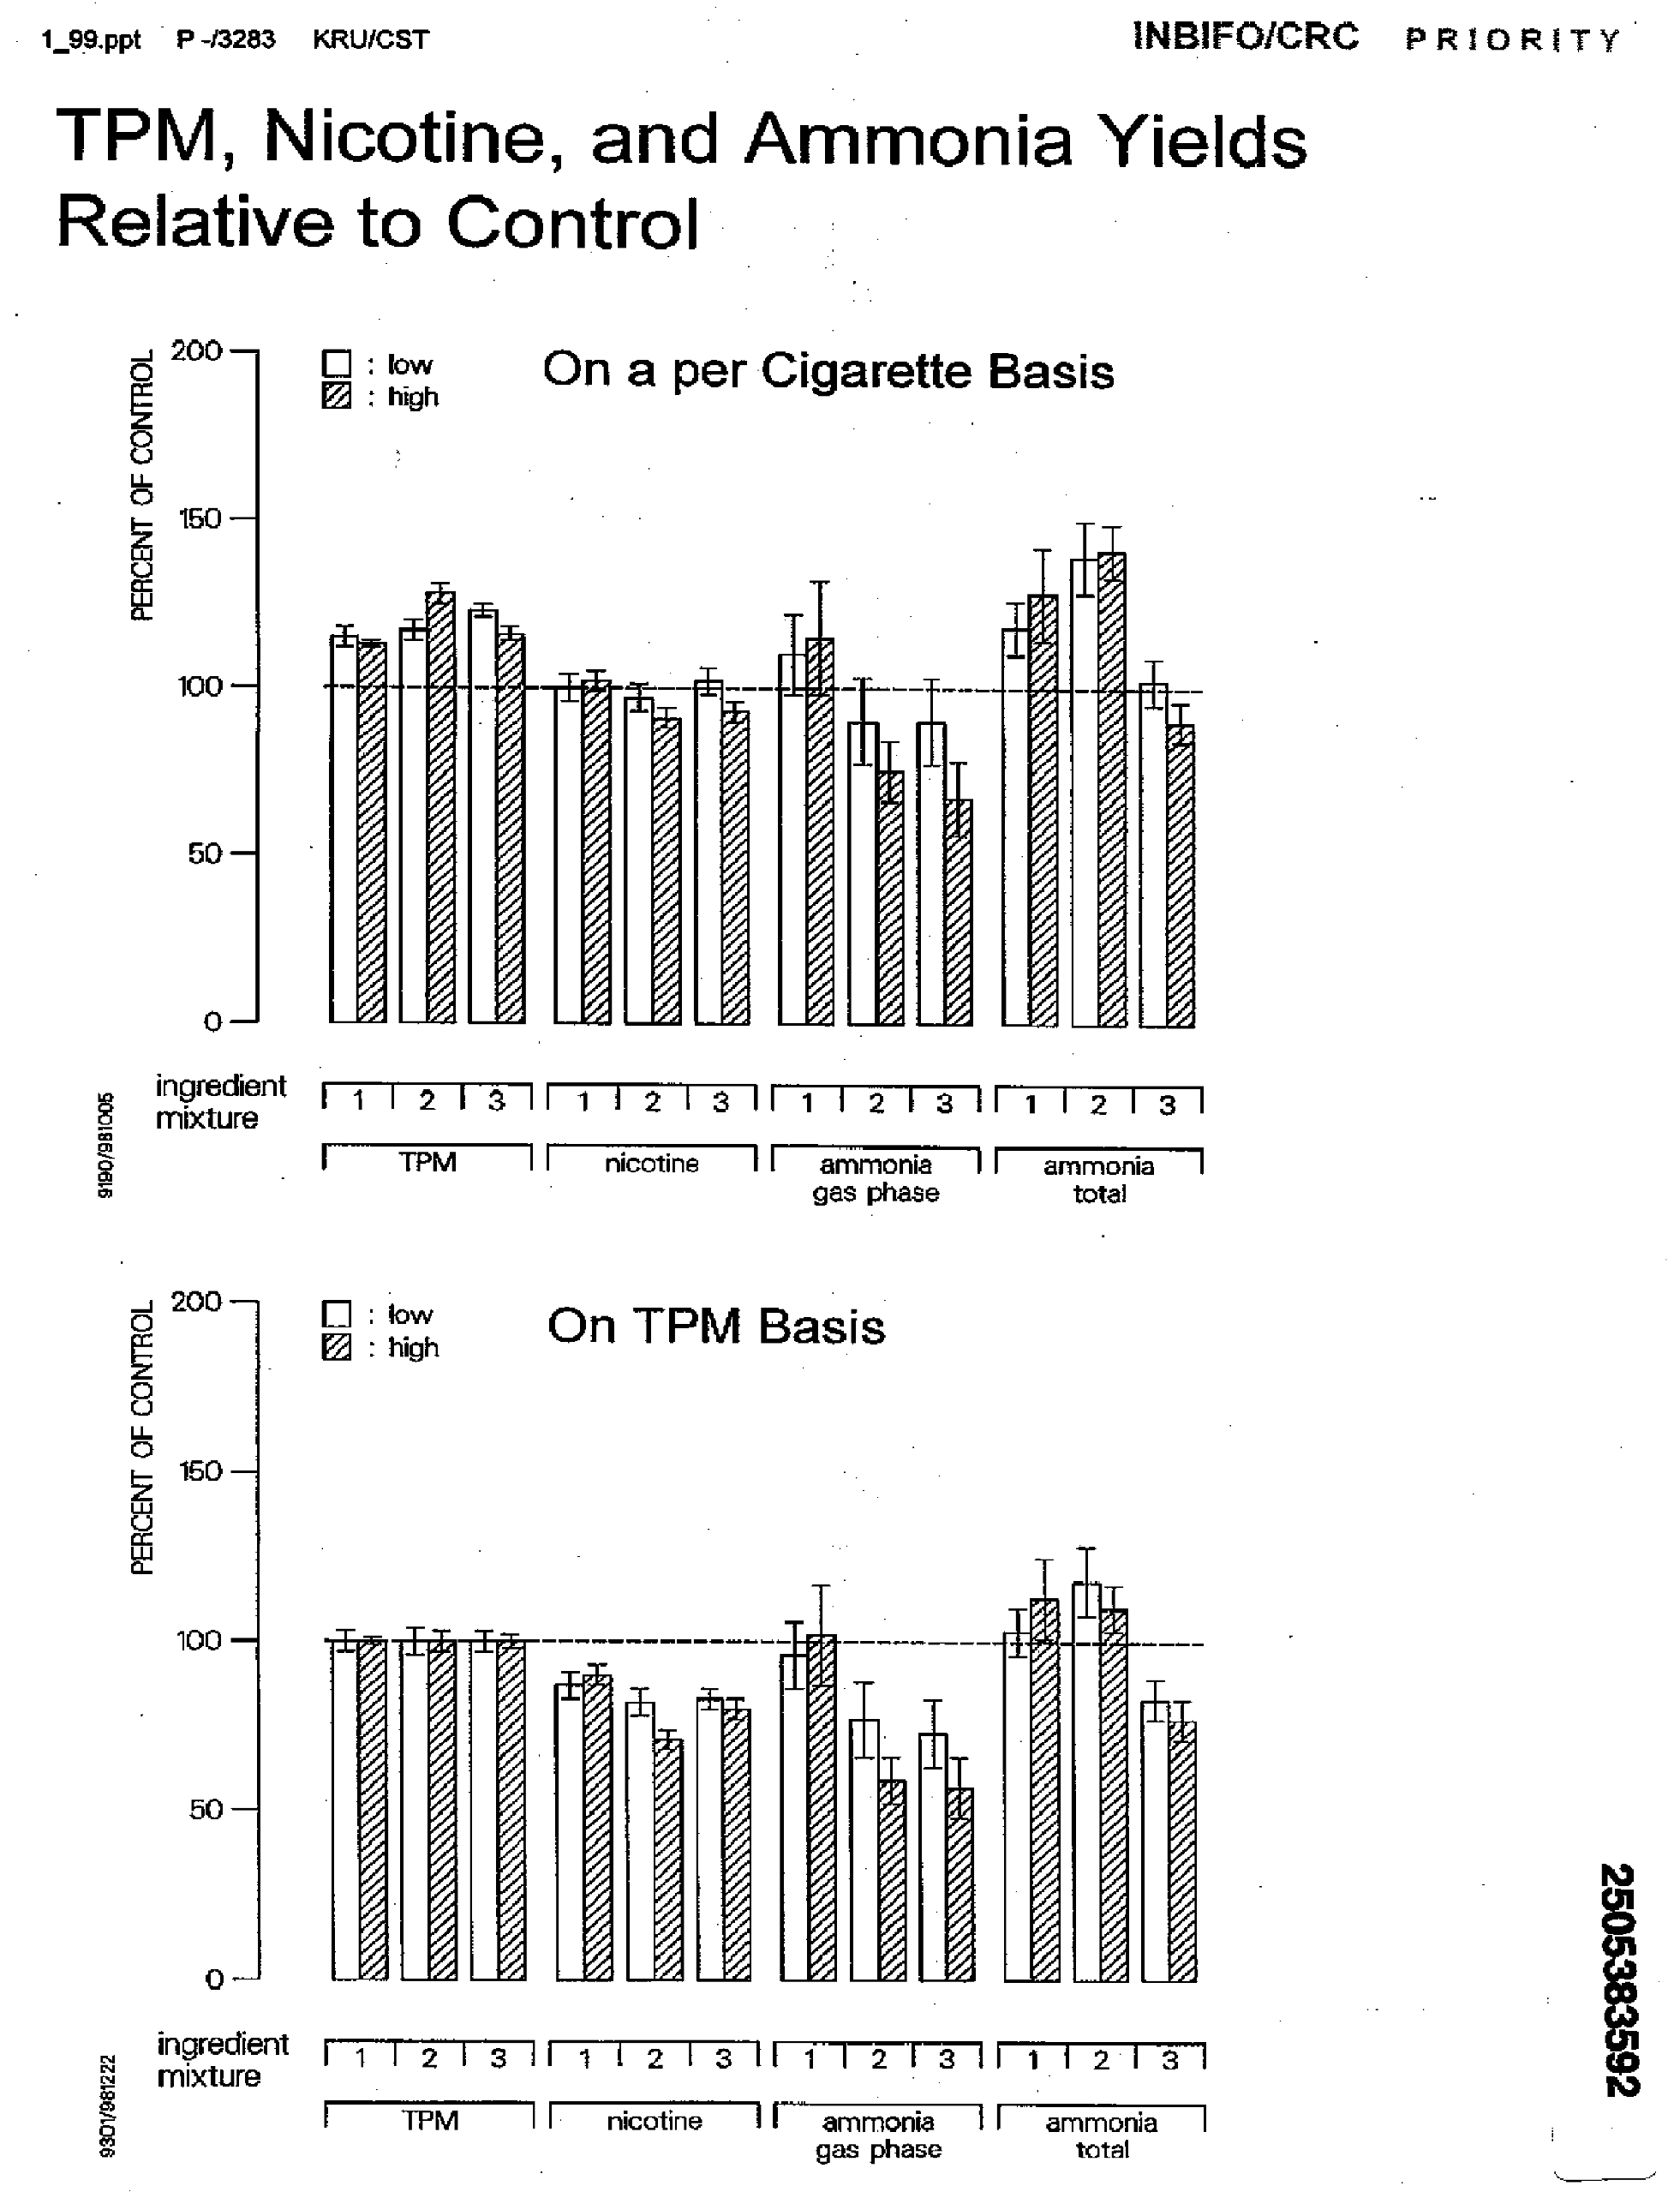 """This result from an internal INBIFO report dated January 1999 shows results for measuring ammonia in Project MIX <em class=""""ref"""">[<b>89</b>]</em>."""